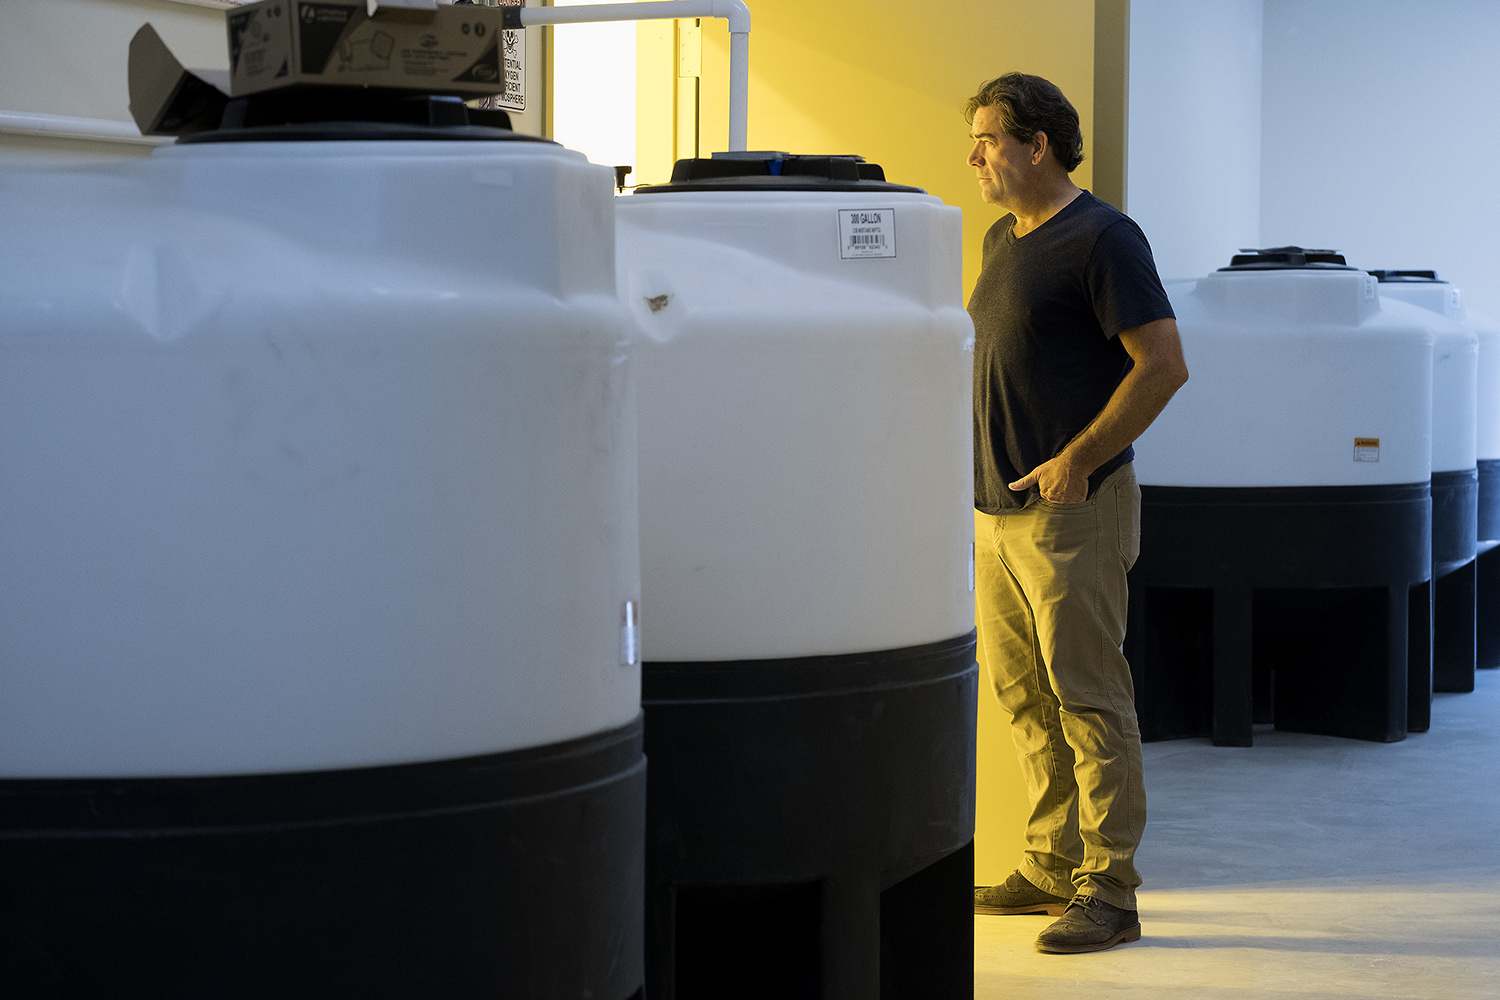 Surrounded by fertigation tanks, Compassionate Cultivation CEO Morris Denton looks into a vegetation room where marijuana plants will begin their growth process.